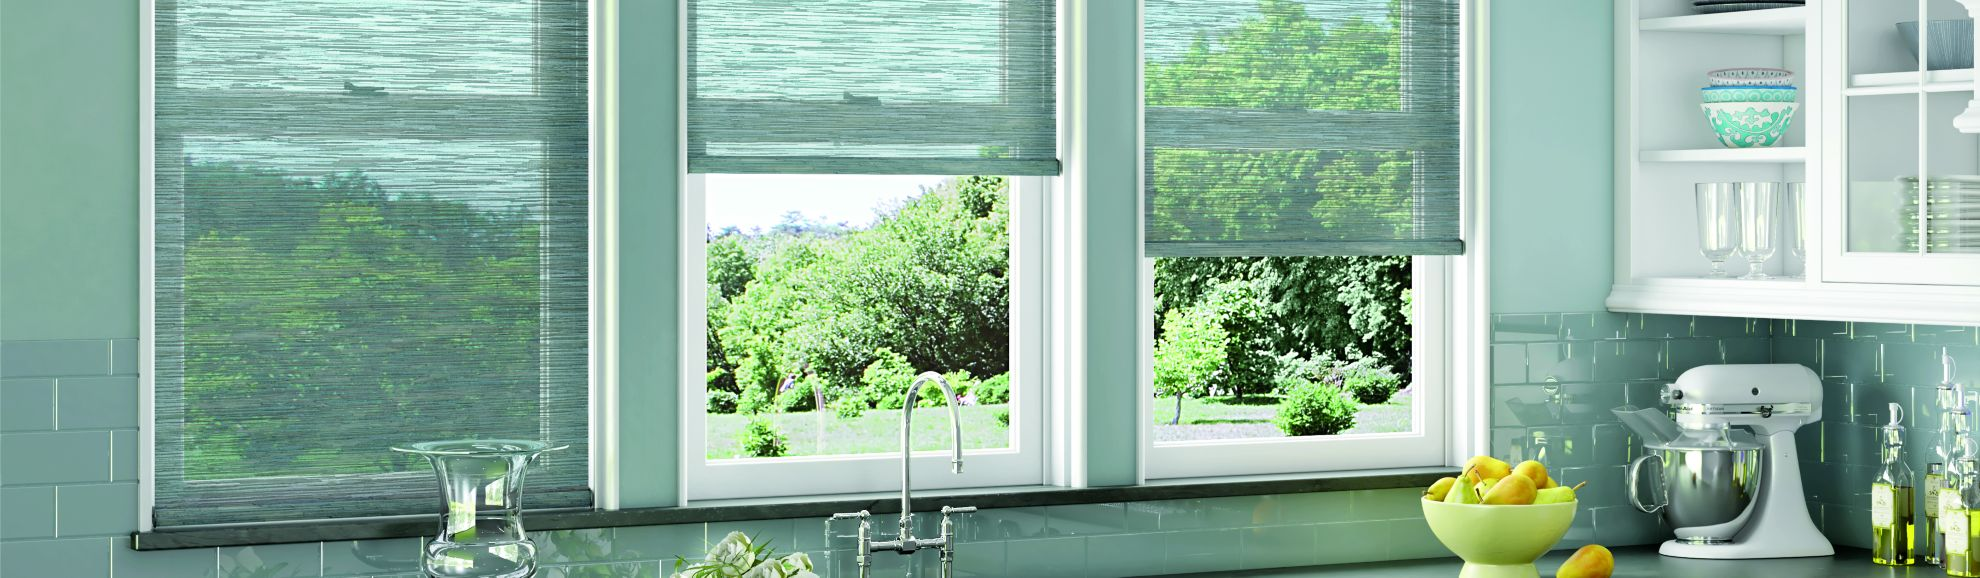 Solar Shades - SheerWeave 4100 10% Openness - Silver Sand 011 - Kitchen